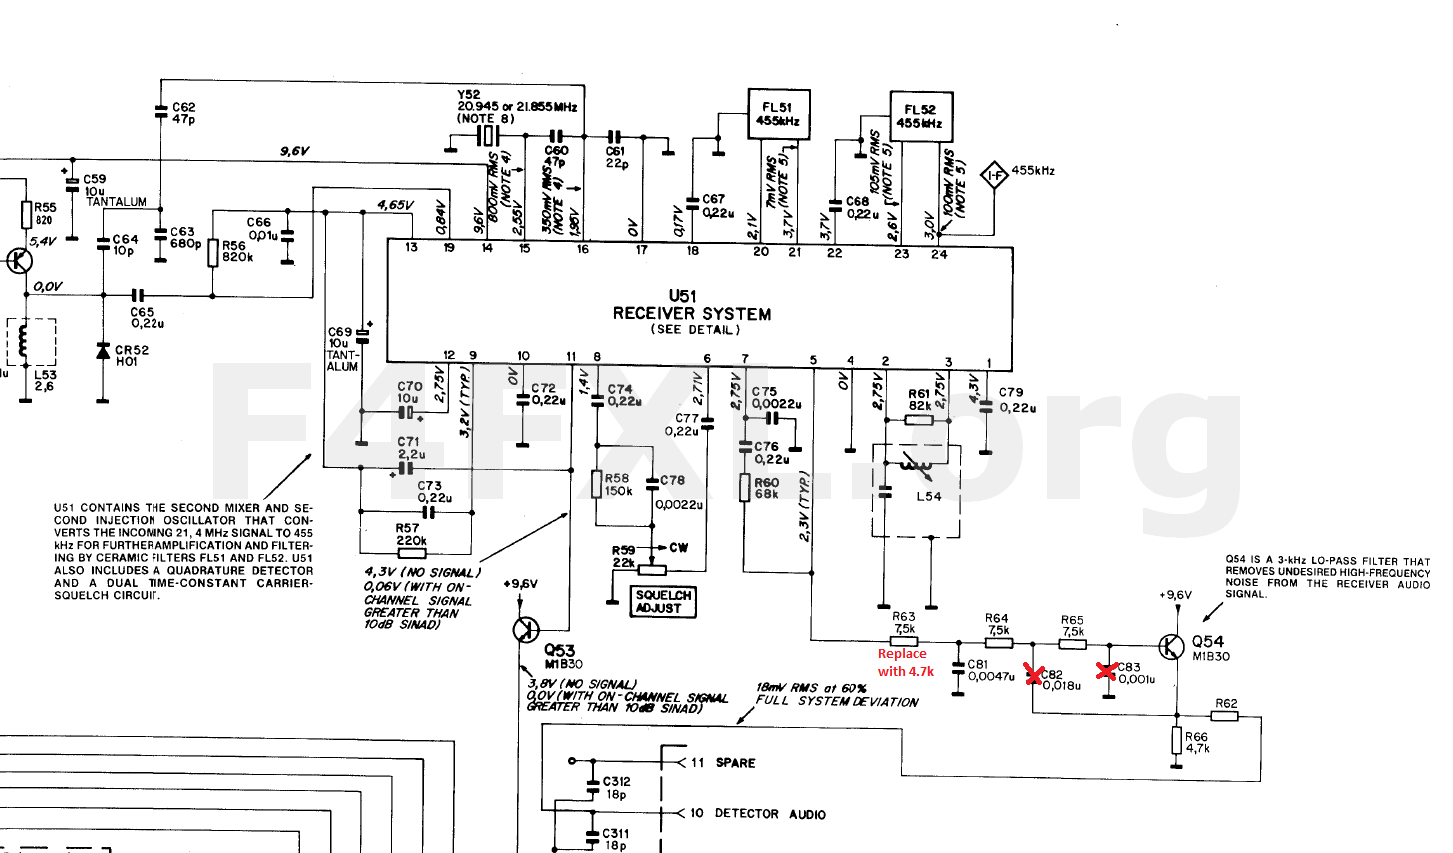 Motorola R100 Repeater Goes Digital F4fxl Wiring Diagram 96v Receiver